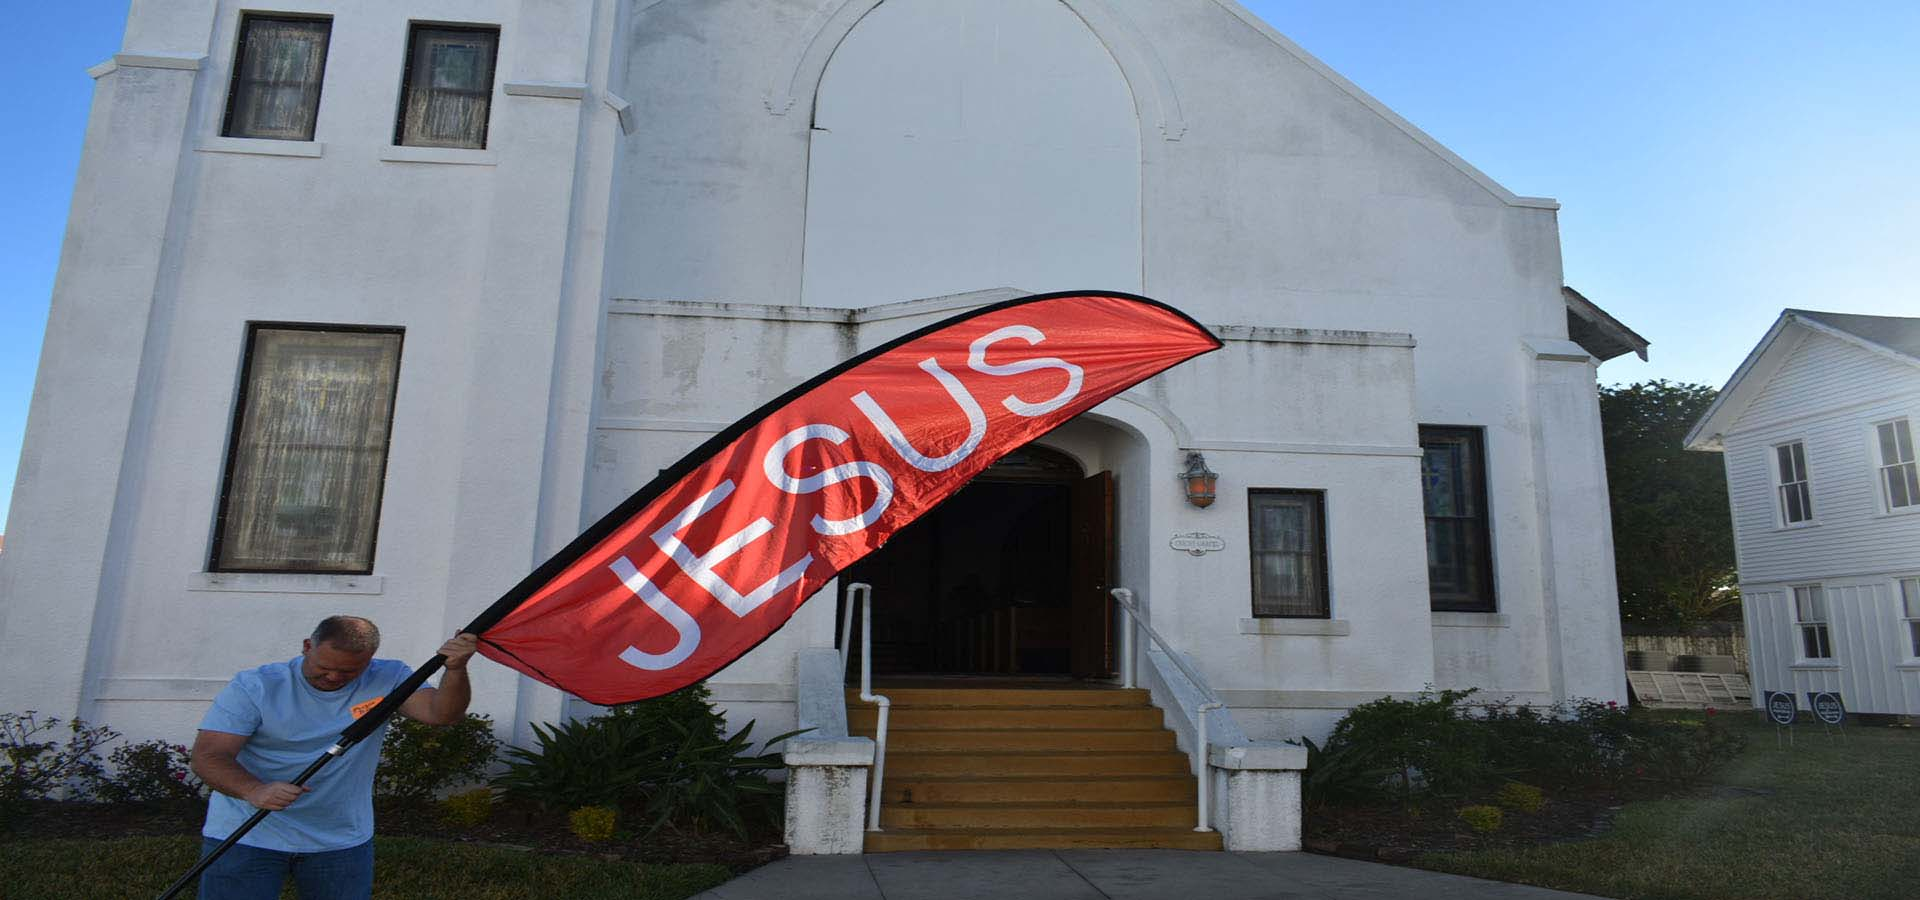 Jesus is King over Churches in Galveston